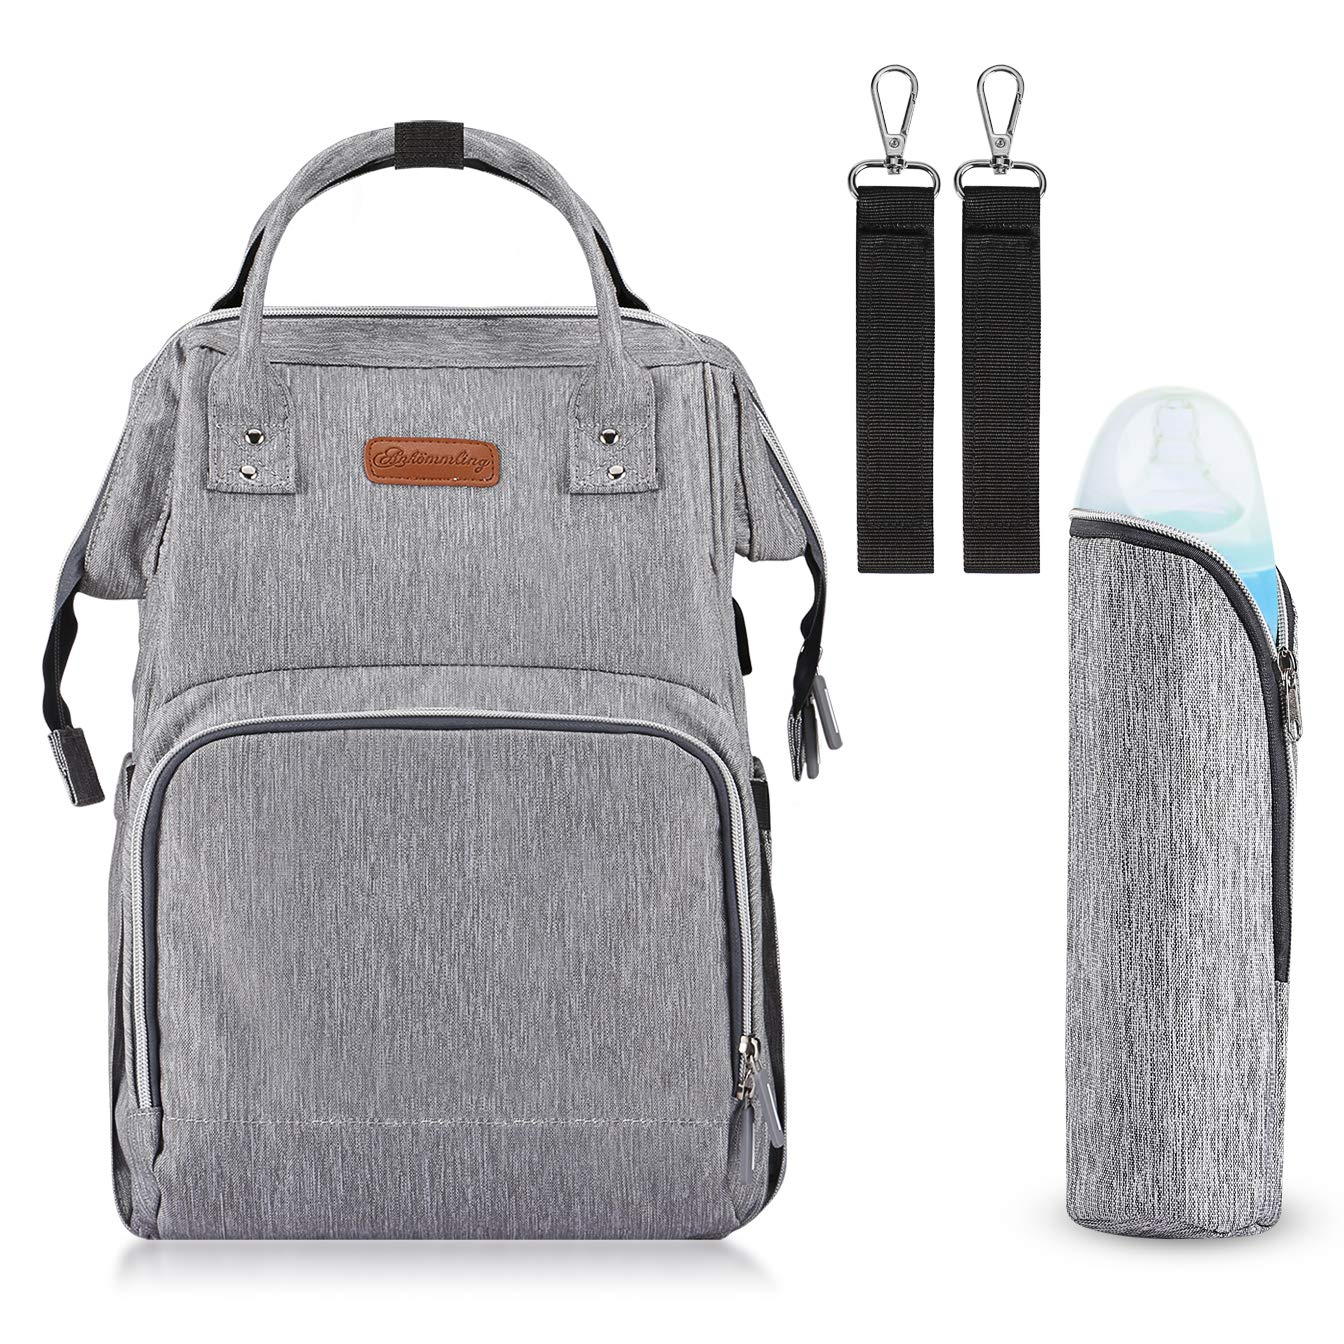 Gray Waterproof and Stylish BESTOPE Diaper Bag Multi-Function Travel Backpack with Stroller Straps 2 Pack and Changing Pad for Baby Care Large Capacity